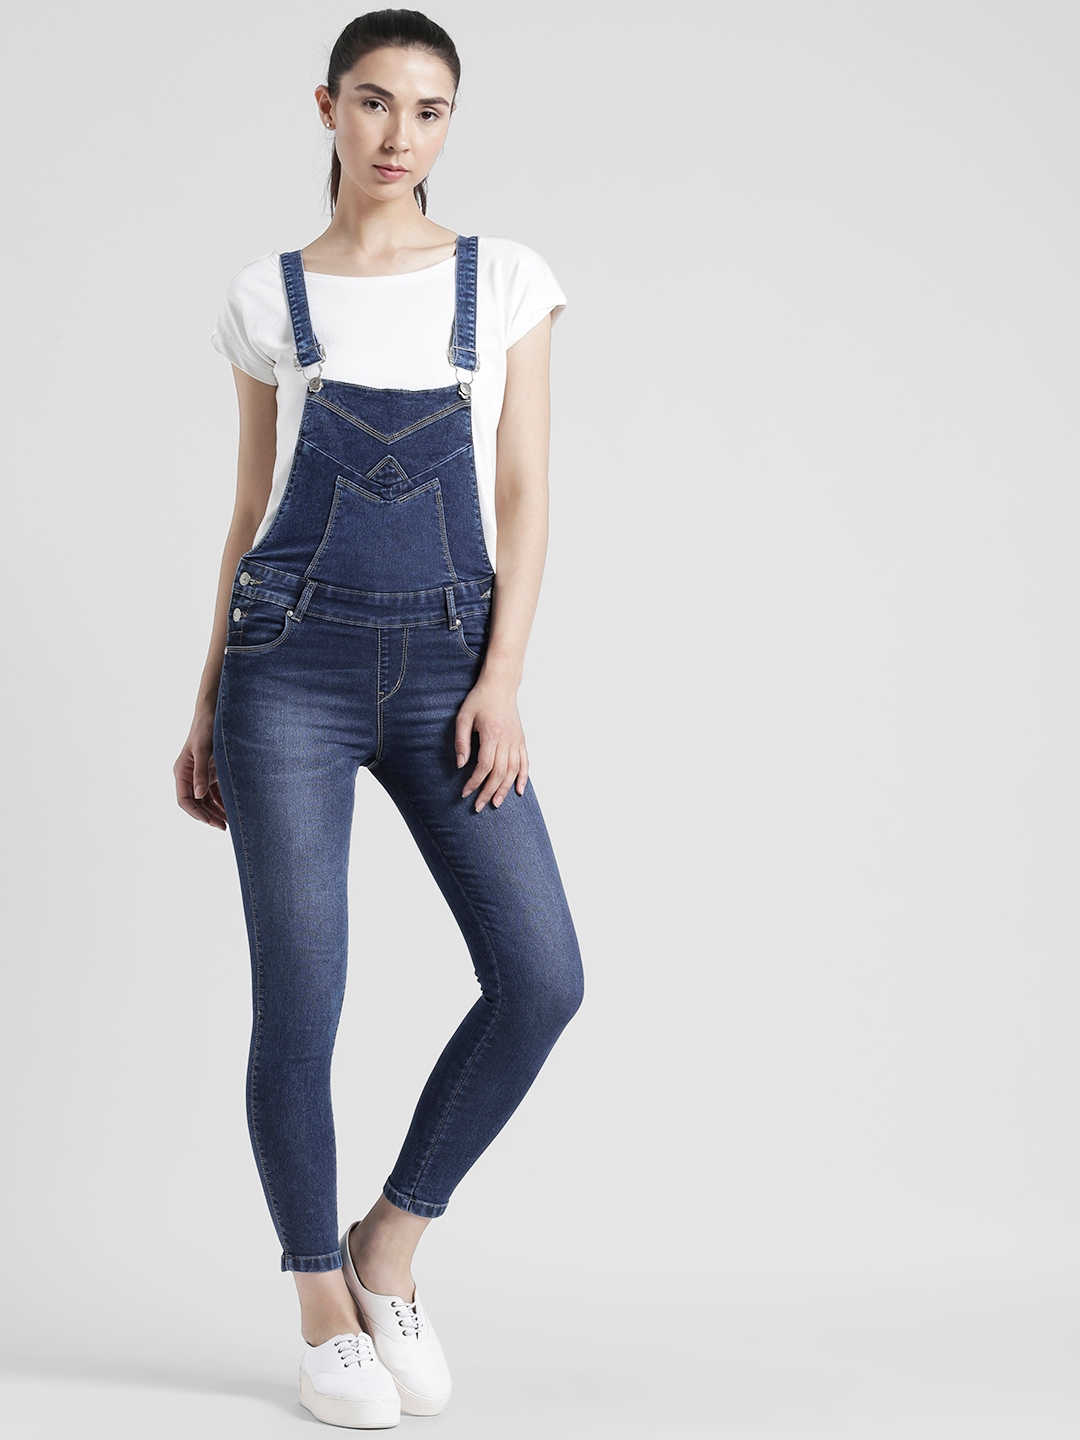 54b645a4523 Buy Devis Women Blue Washed Denim Dungarees - Dungarees for Women ...